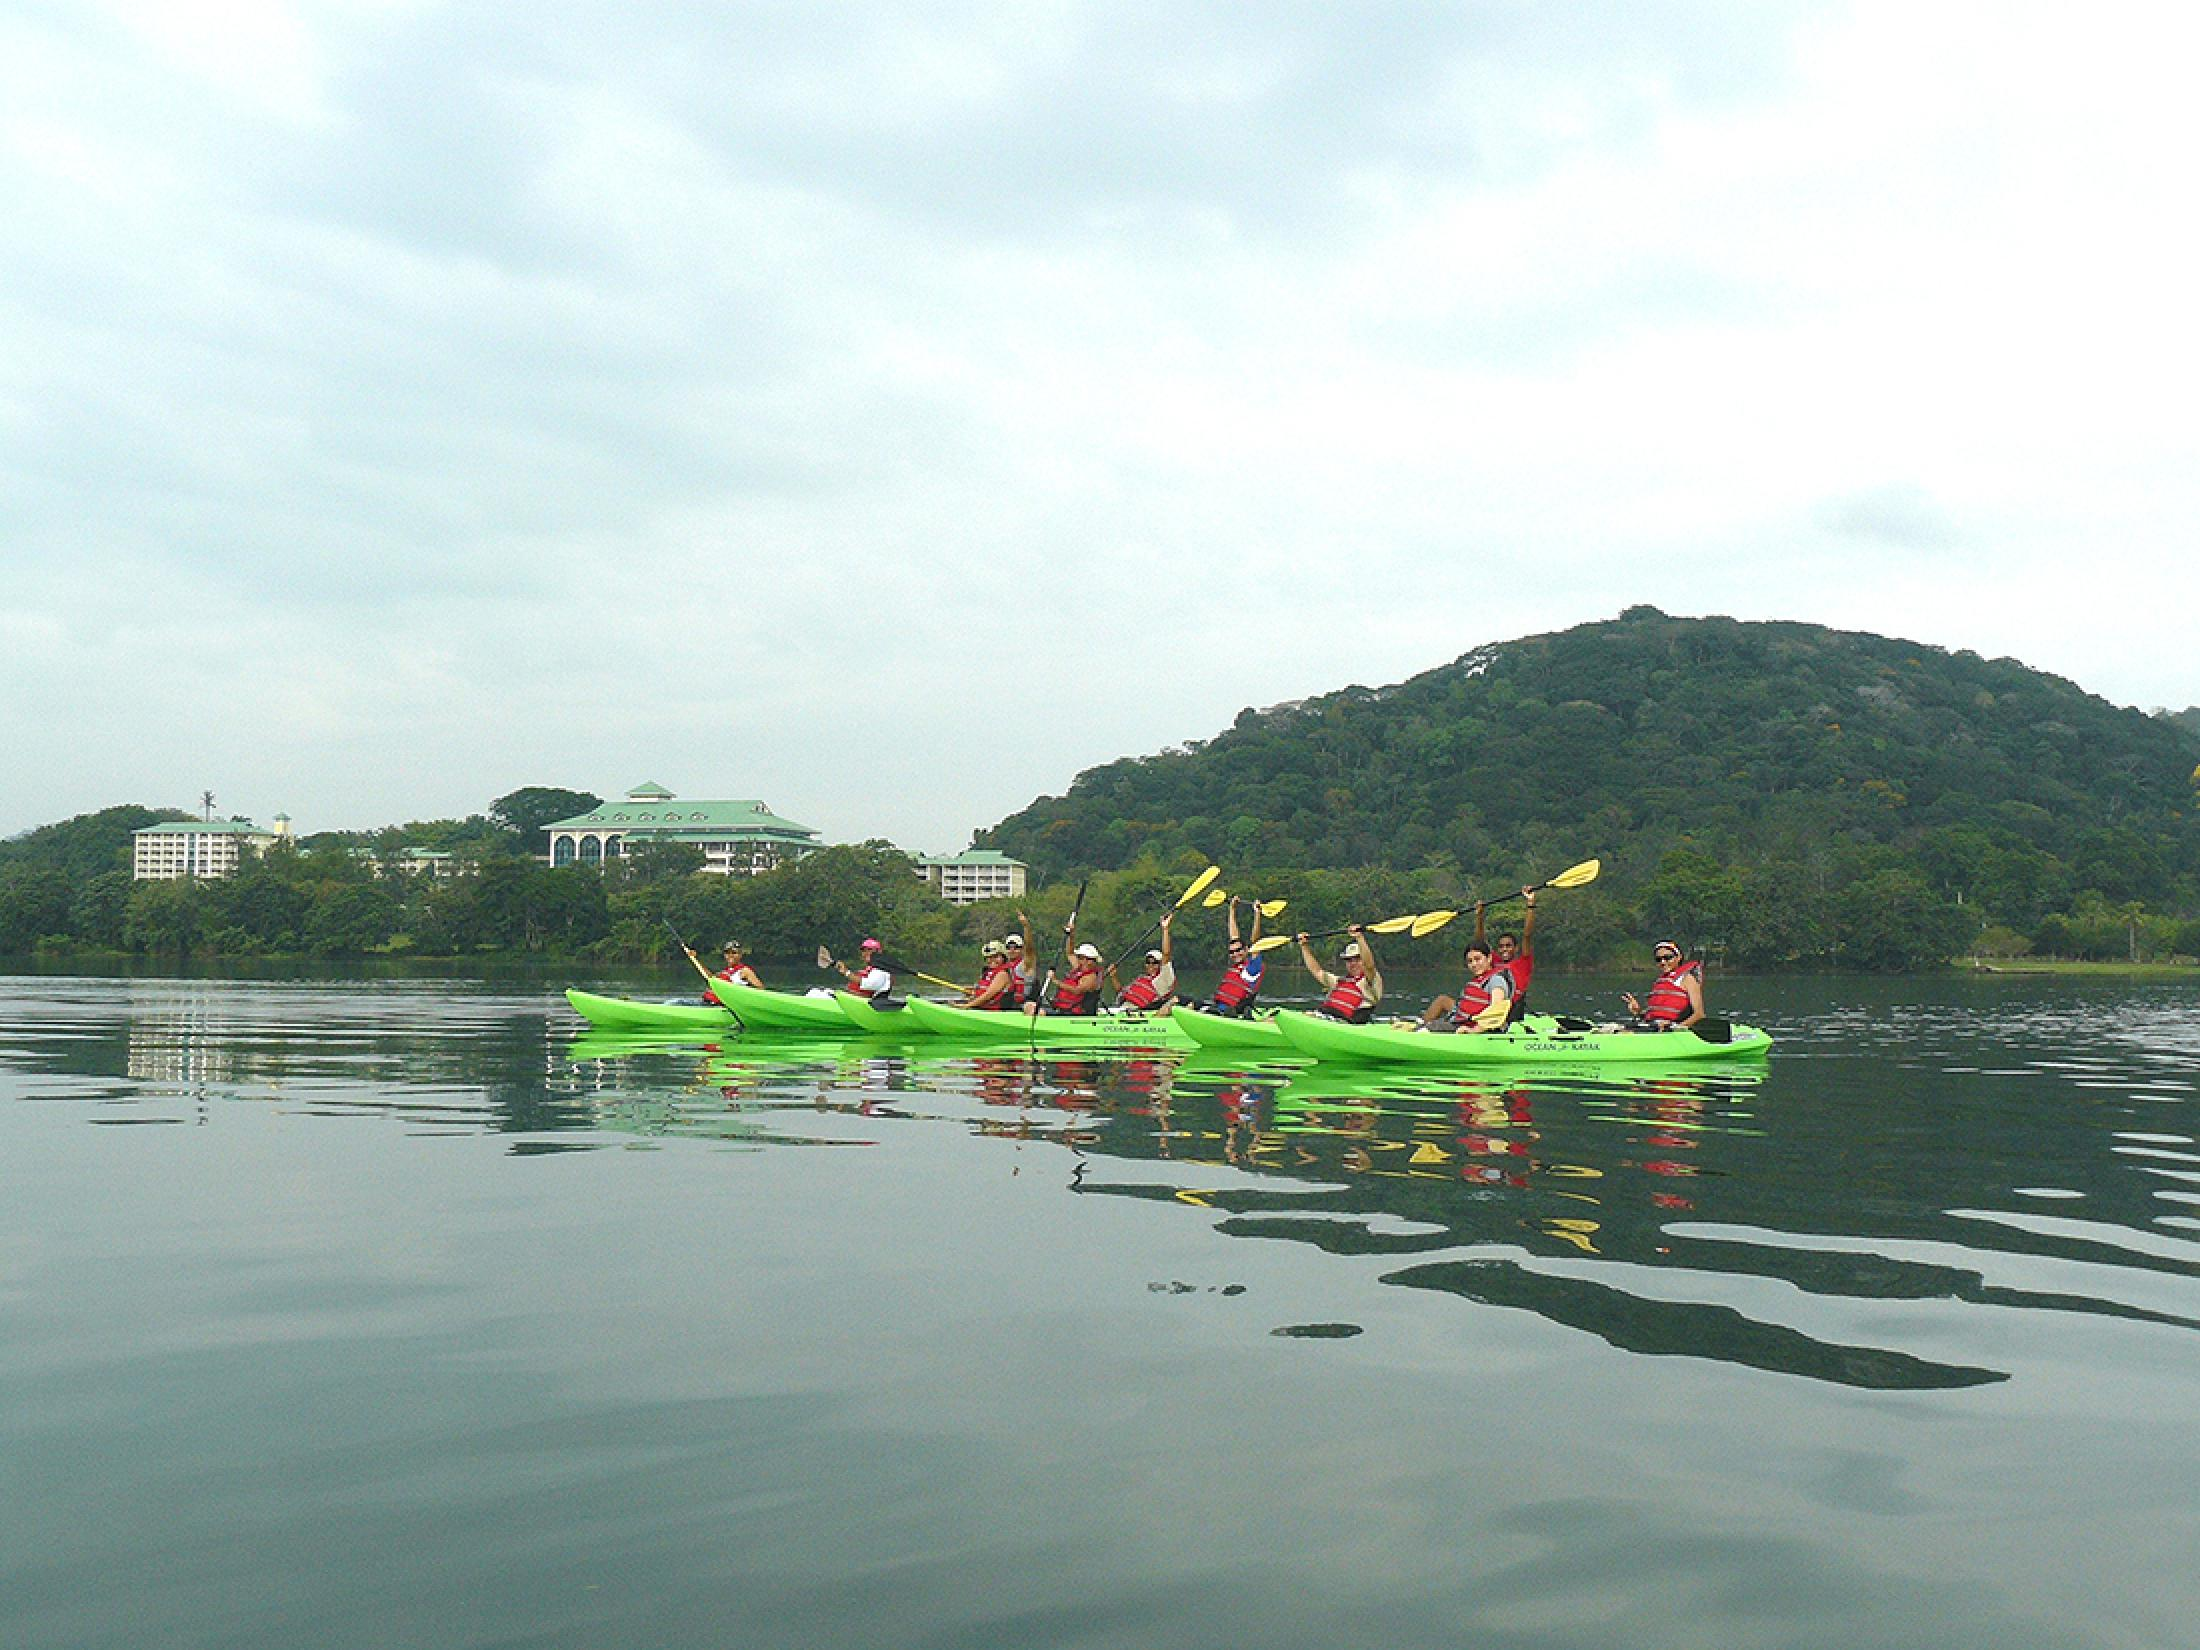 Kayaking on the Panama Canal